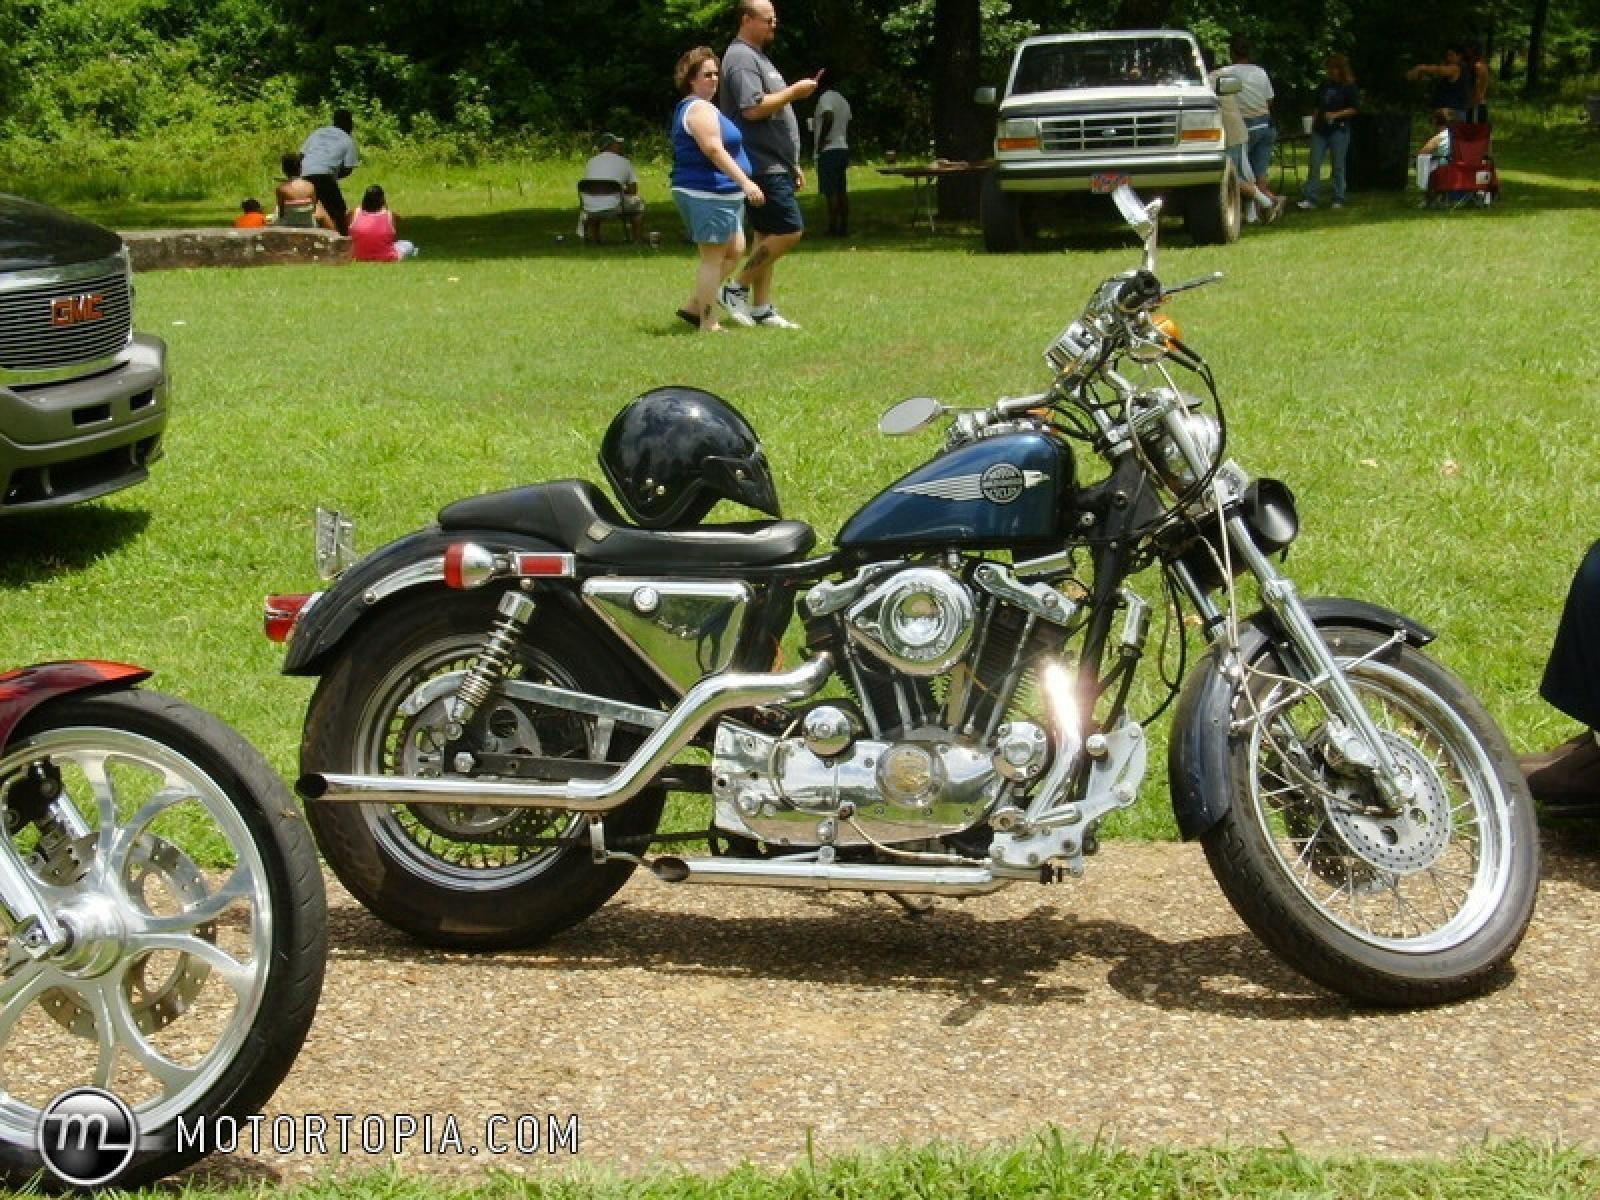 Harley Davidson Sportster 1000 Wiring Diagram Will 1975 Pdf 1999 Kawasaki Vulcan 1500 Vn1500 Schematics And Diagrams 2014